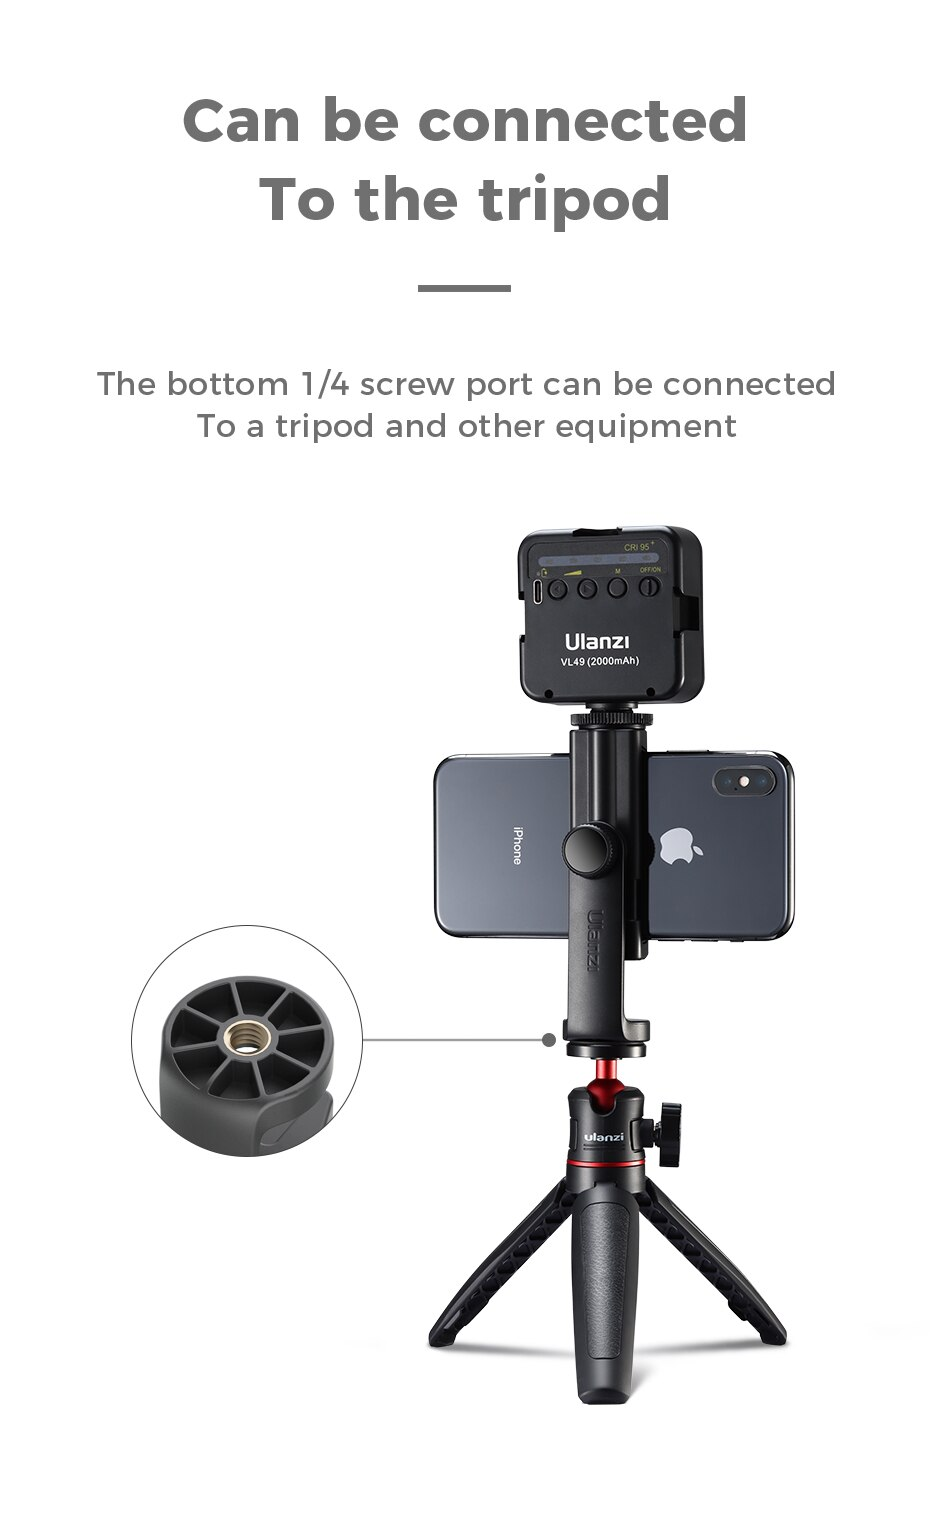 H5dce53ff0e1d4d6184c41a141e1d4d0cu - Ulanzi ST-17 Universal Smartphone Clip Mount Holder Cold Shoe Vlog Tripod Mount Vertical Shooting for Huawei iPhone Android